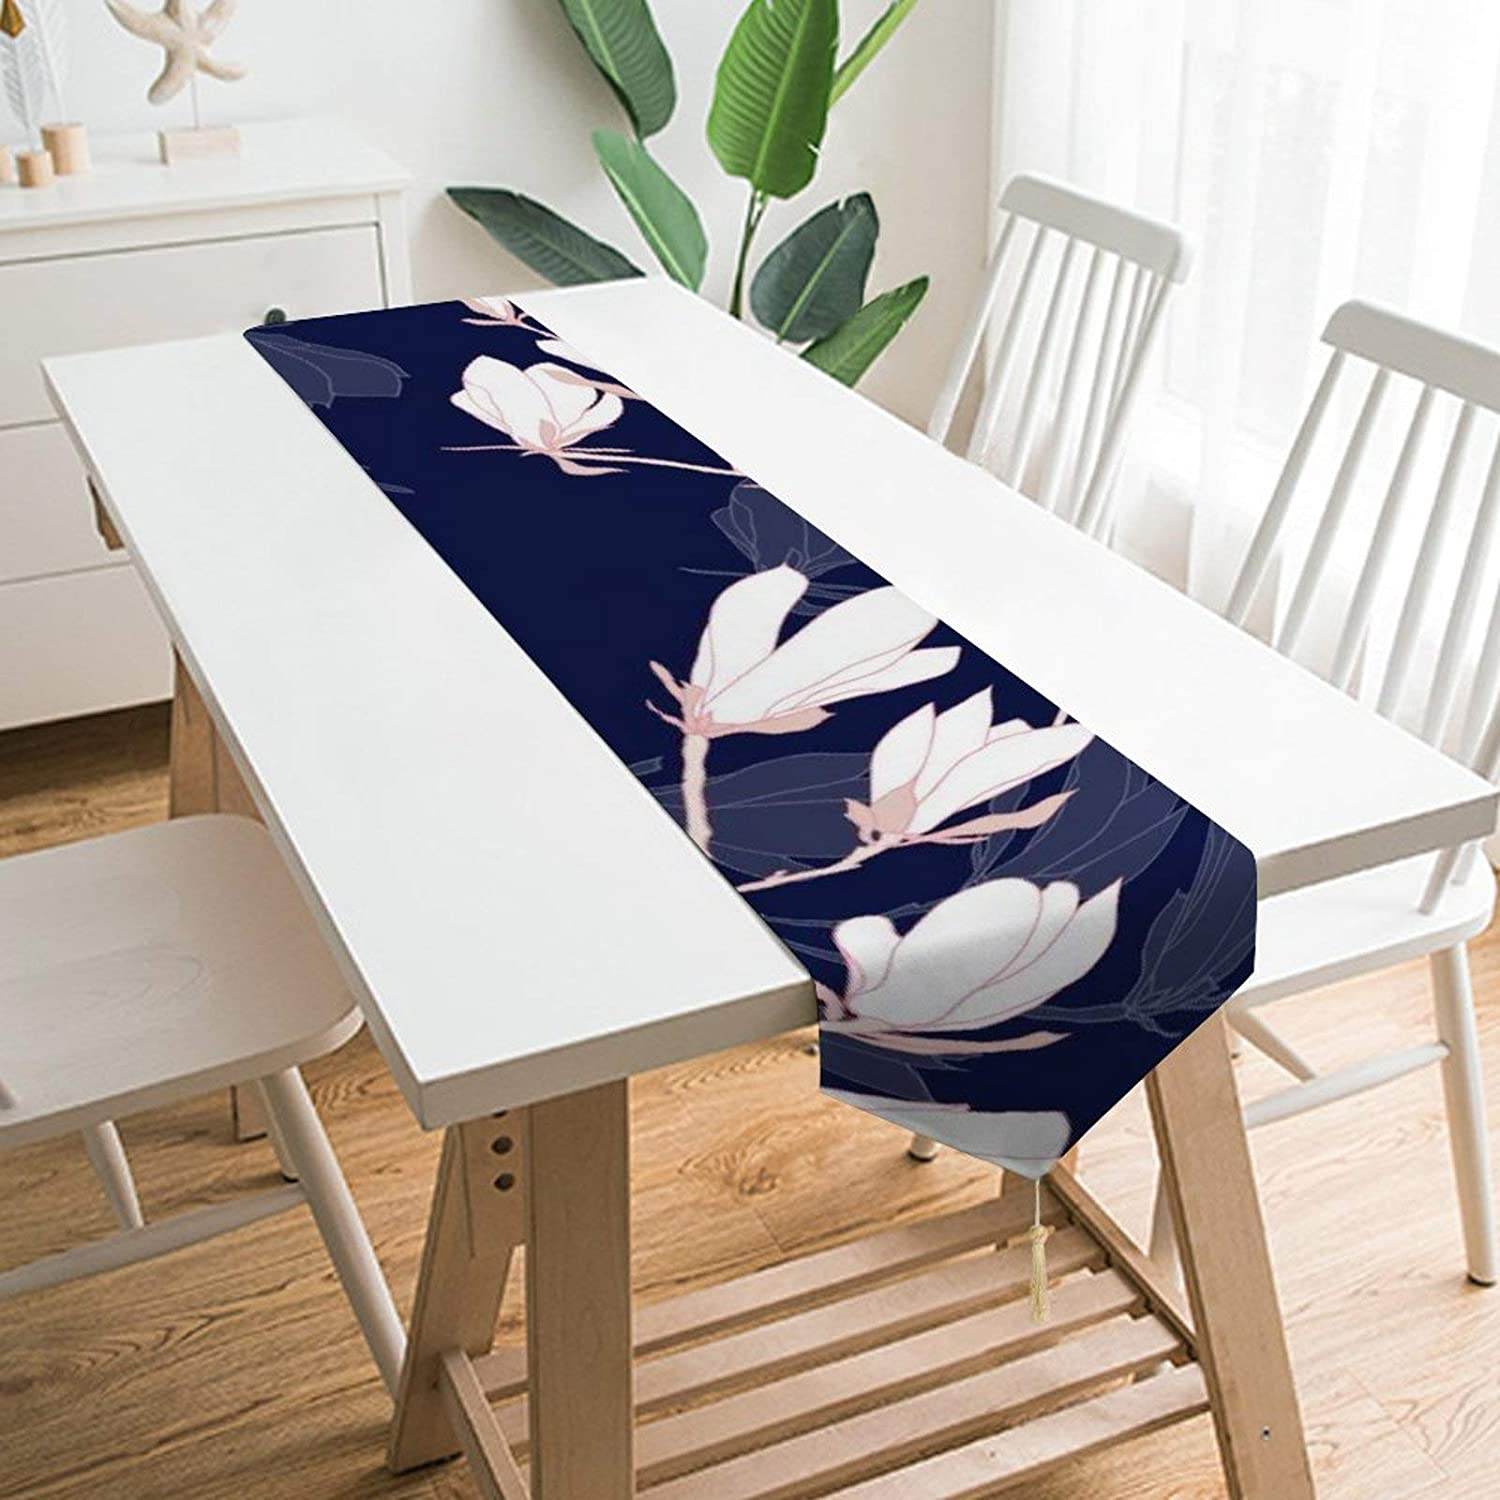 Amazon Com Qsmx Table Decorations Cloth For Everyday Use Table Runners 78 Inch Long For Dinner Parties Events Rectangle Dresser Scarf Christmas Table Runnerwhite Flowers Navy Blue Home Kitchen